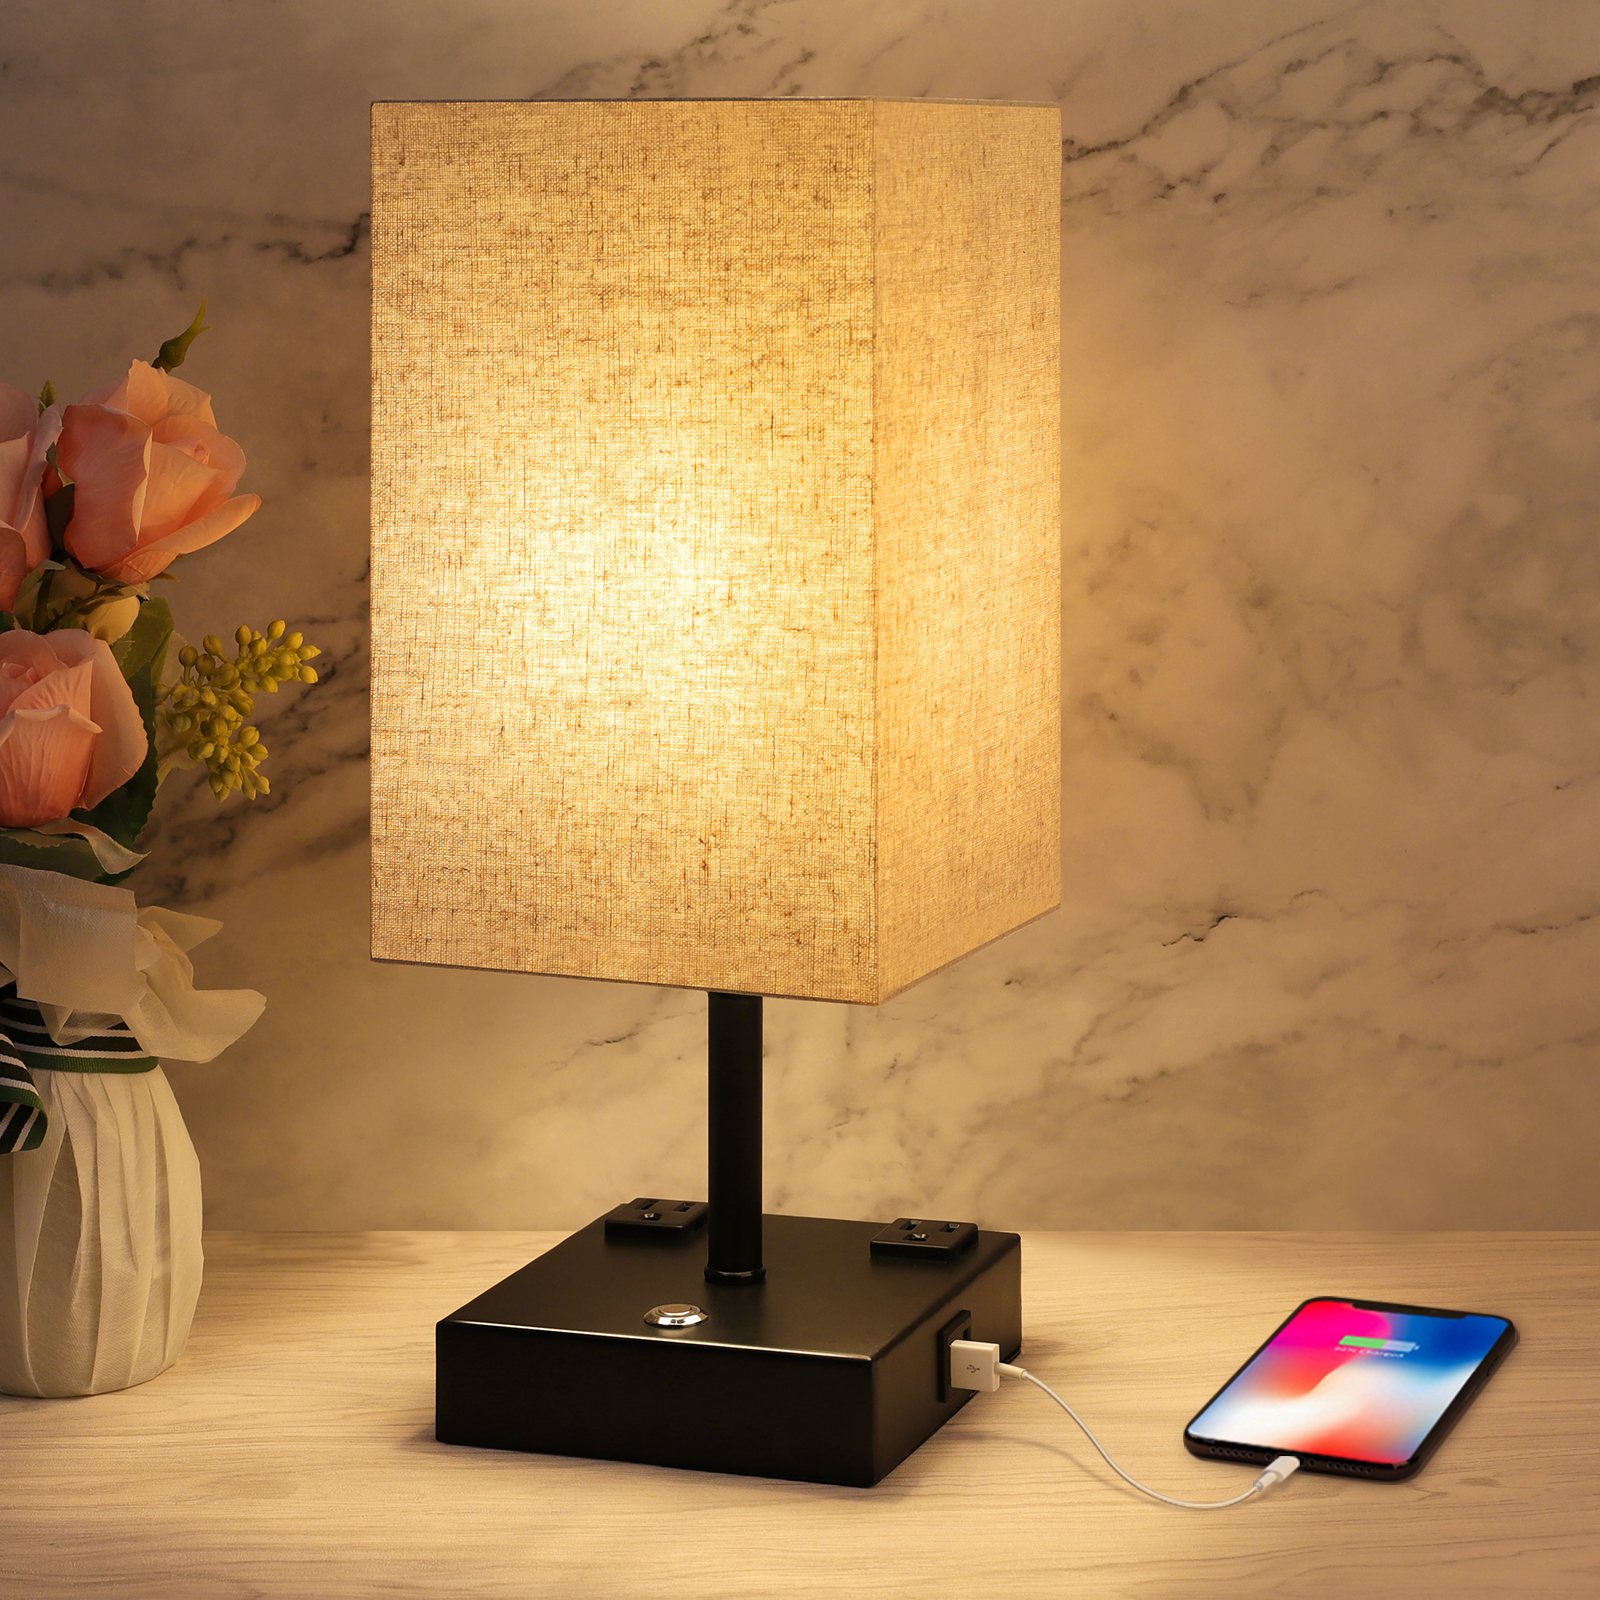 Touch Table Lamp, 3 Way Dimmable Touch Lamp Bedside Lamp with 2 USB Charging Ports and 2 AC Outlets, Modern Nightstand Lamps Bedroom Lamp for Bedroom Living Room Reading Office, LED Bulb Included